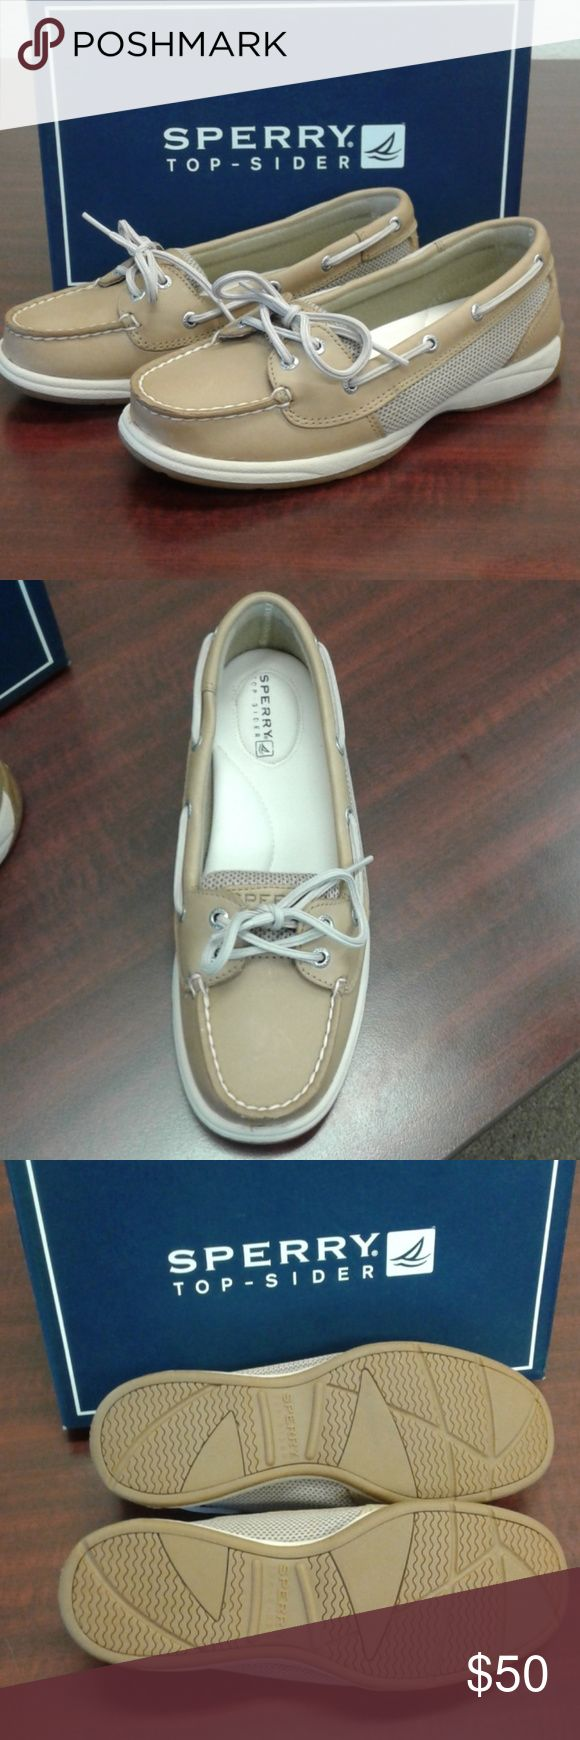 Never Worn! Sperry Boat Shoes🌞🚤 Adorable Women's Sperry Boat Shoes. Brand new, never worn! Style 'Laguna', size 7. Sperry Top-Sider Shoes Flats & Loafers